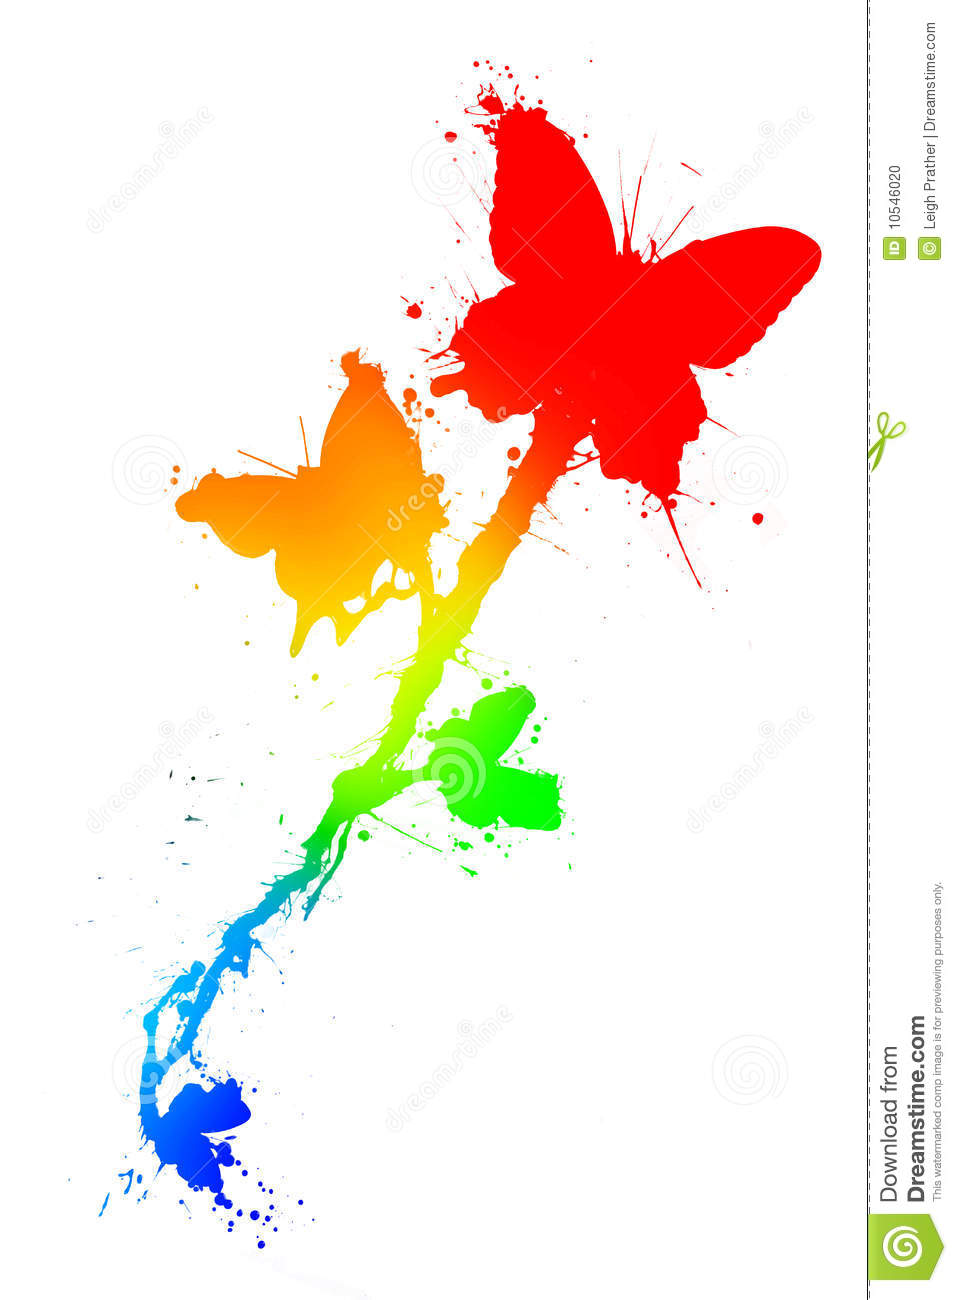 paint-splatter-butterflies-paint-splatter-10546020.jpg